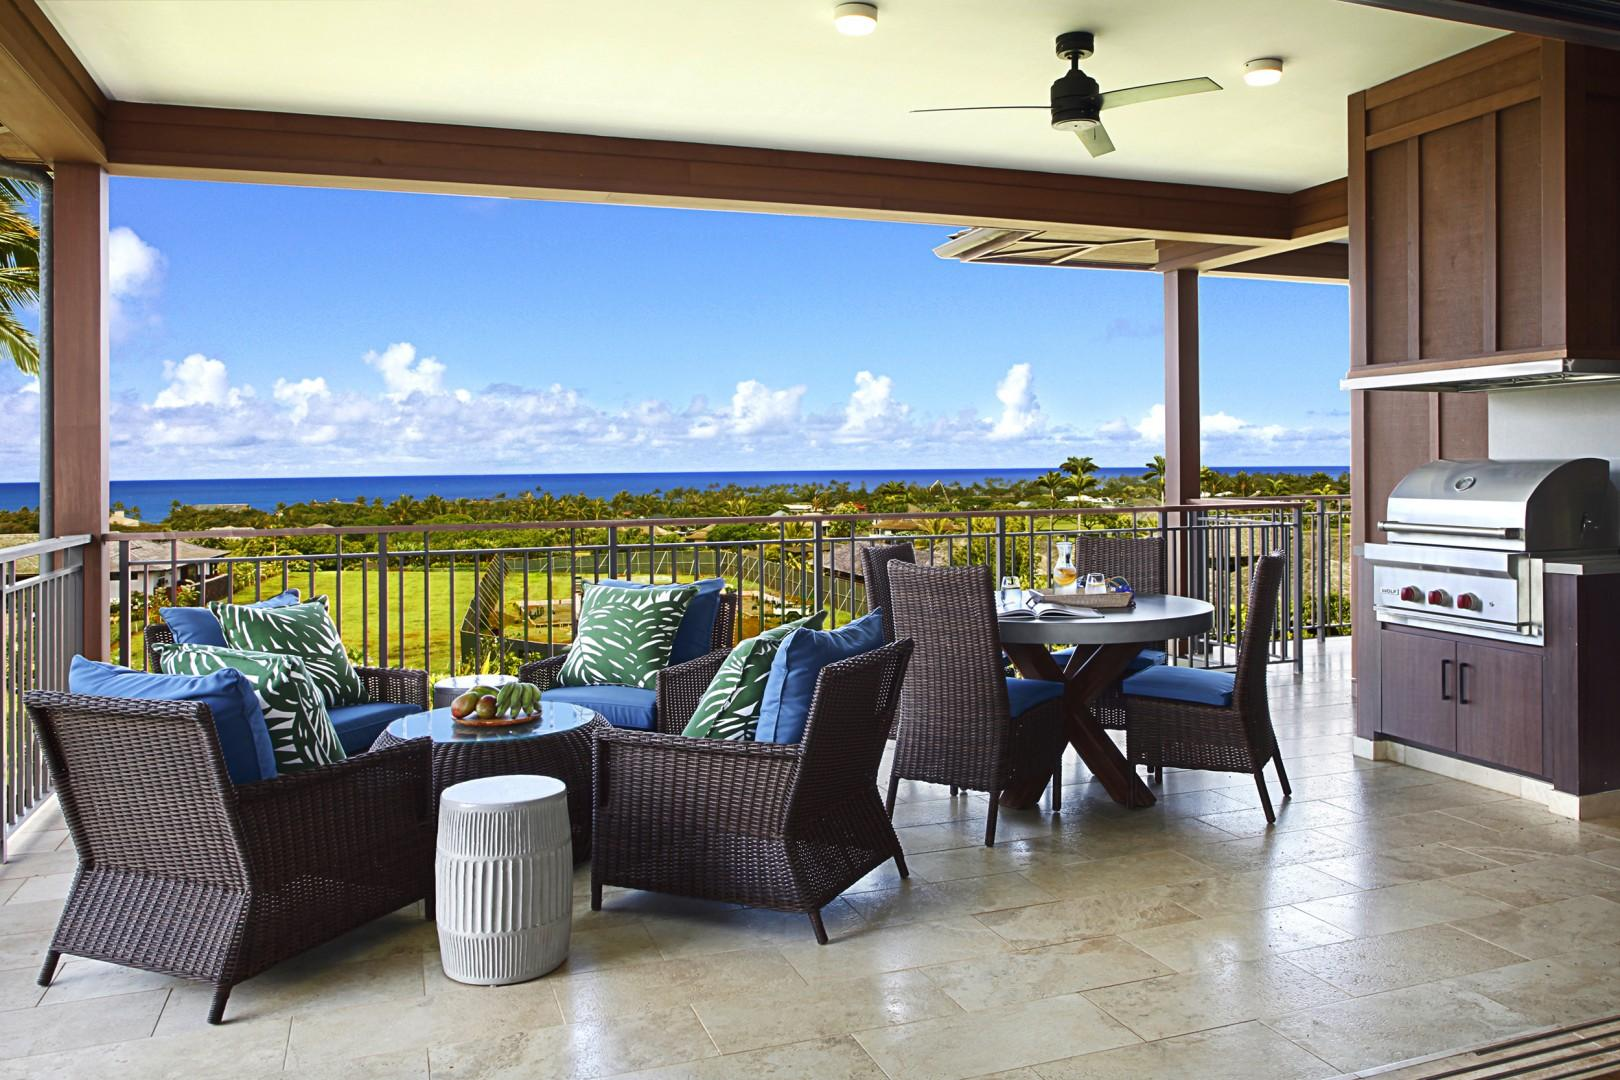 Lanai seating with outdoor dining and gas BBQ